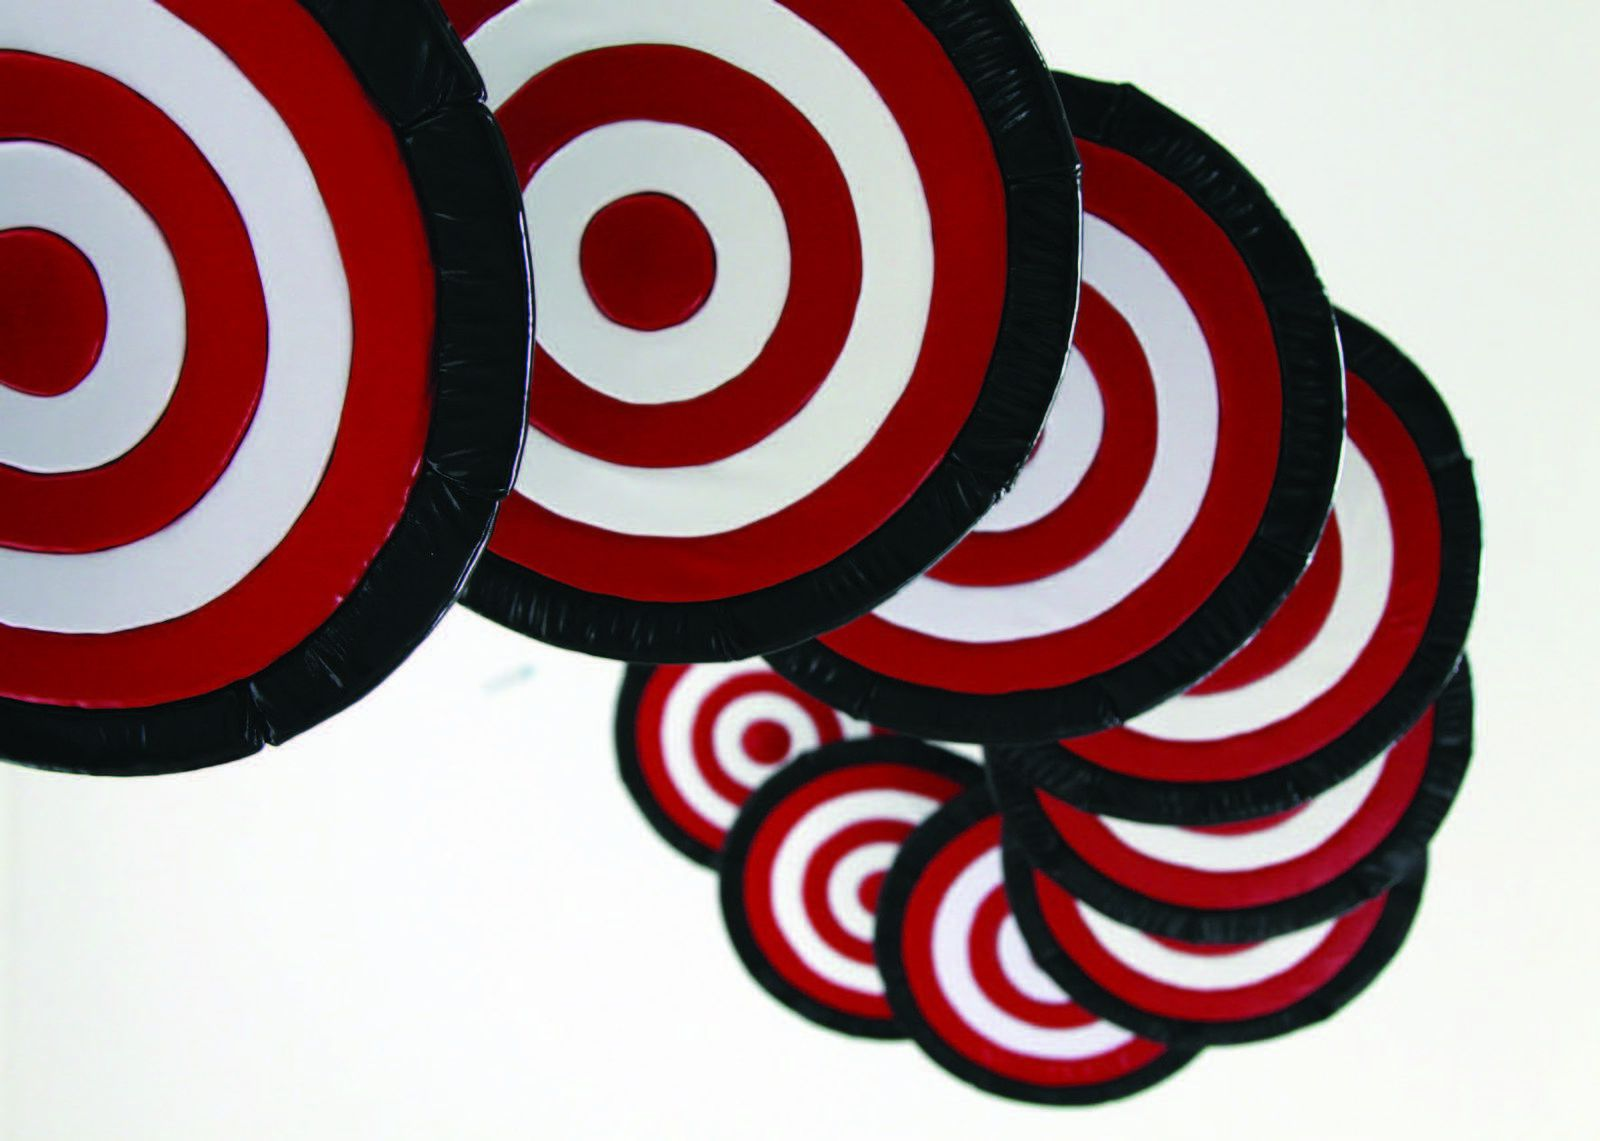 Flying Targets - 2015 (Détail)